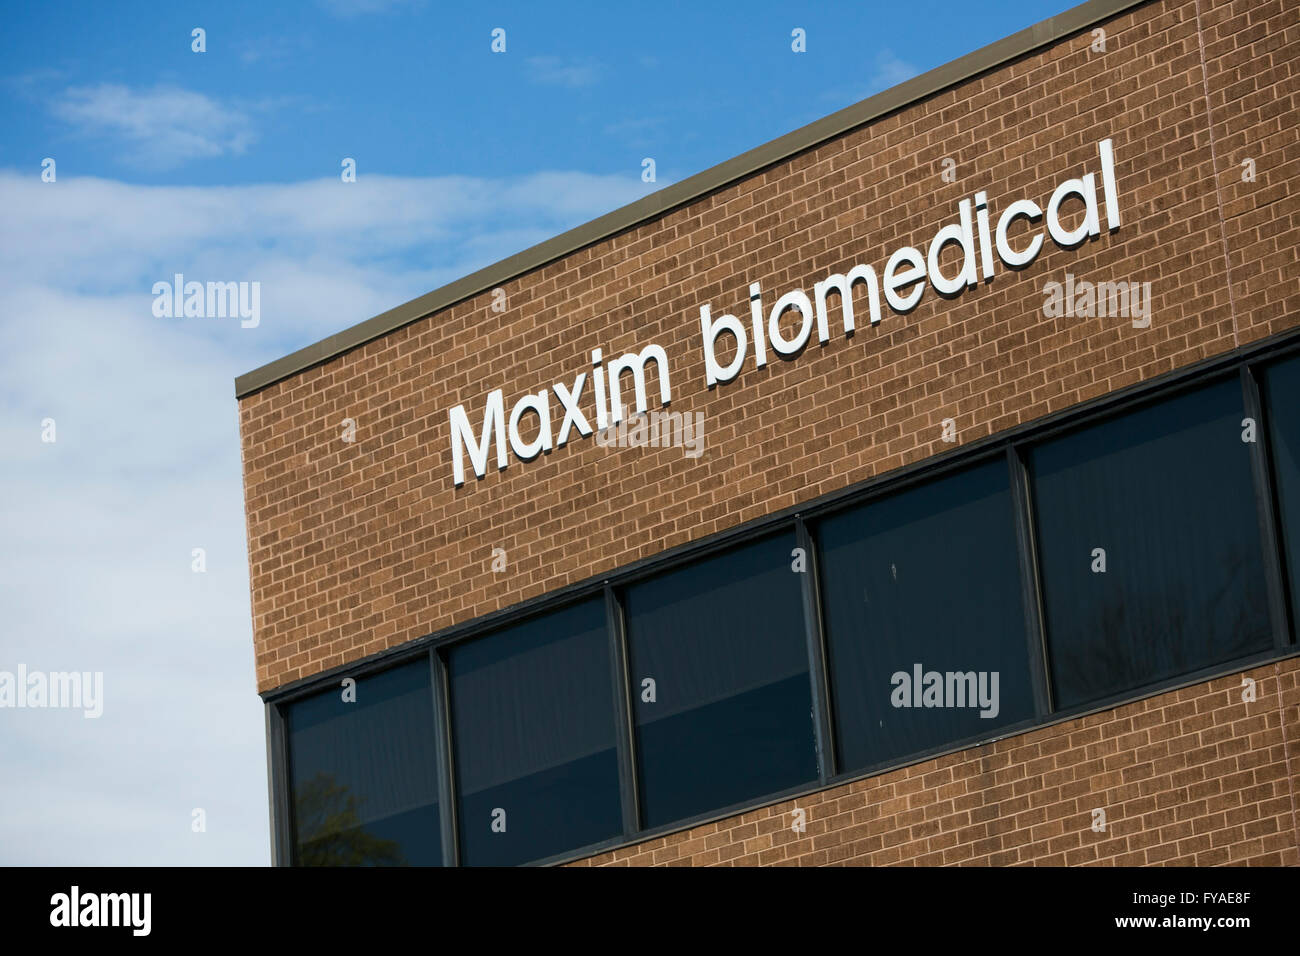 A logo sign outside of the headquarters of Maxim Biomedical, Inc., on April 10, 2016 in Rockville, Maryland. - Stock Image